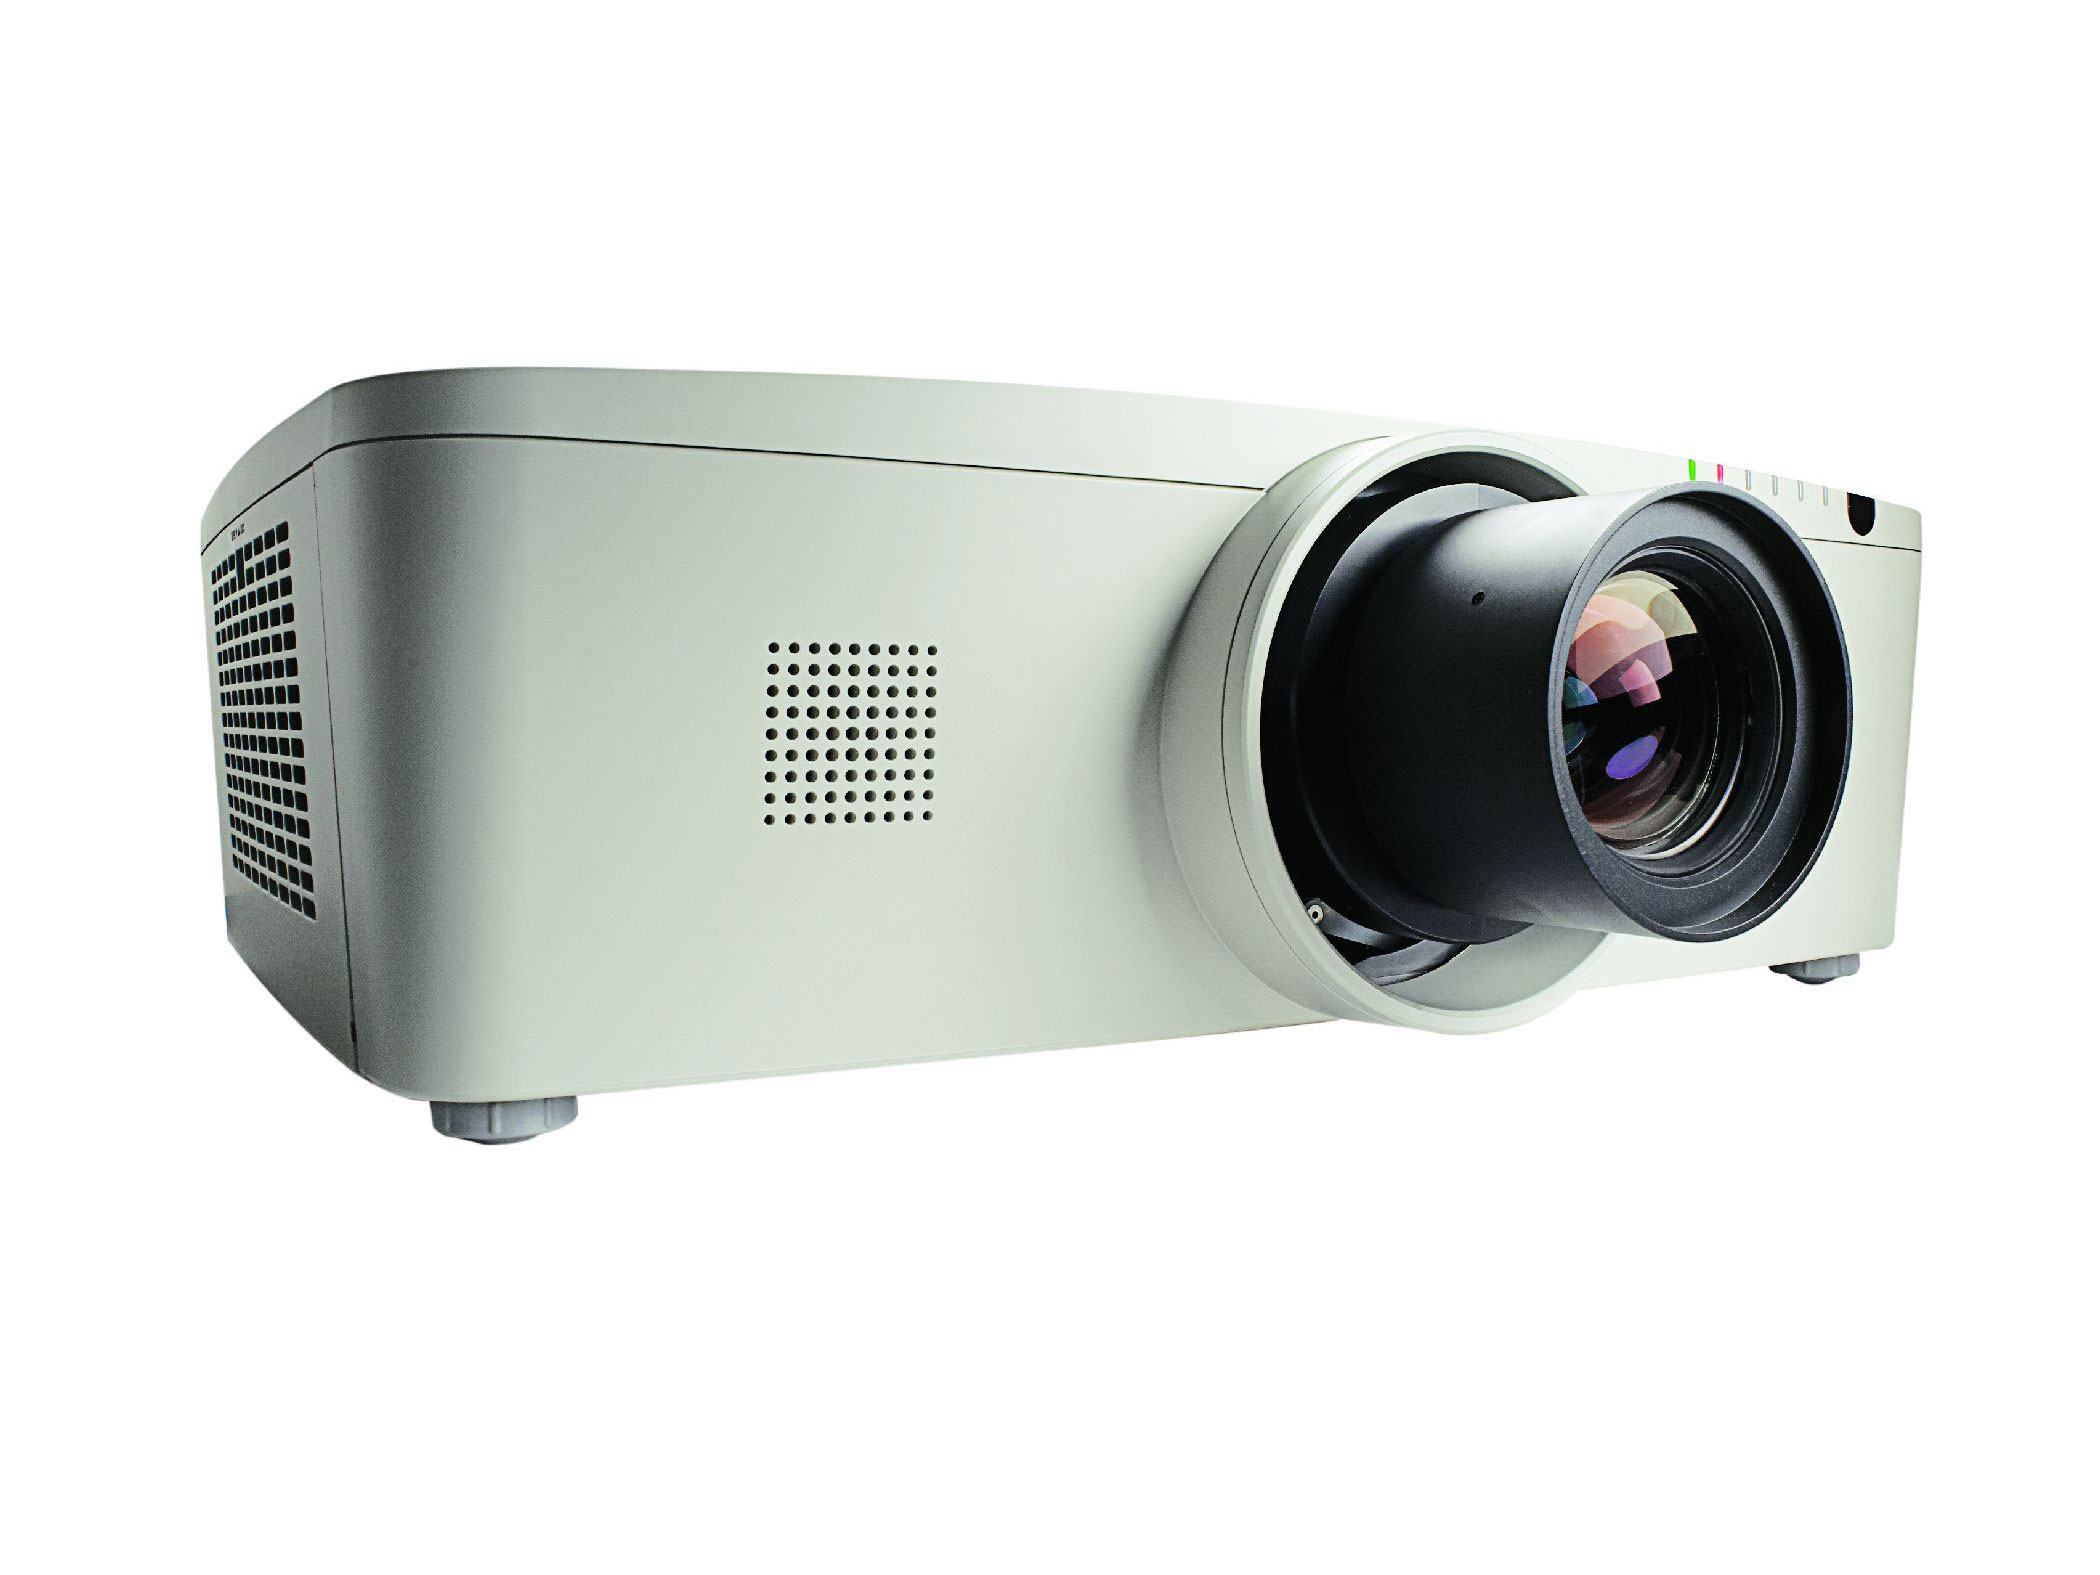 /globalassets/.catalog/products/images/christie-lw555/gallery/christie-lw555-lcd-digital-projector-image2.jpg